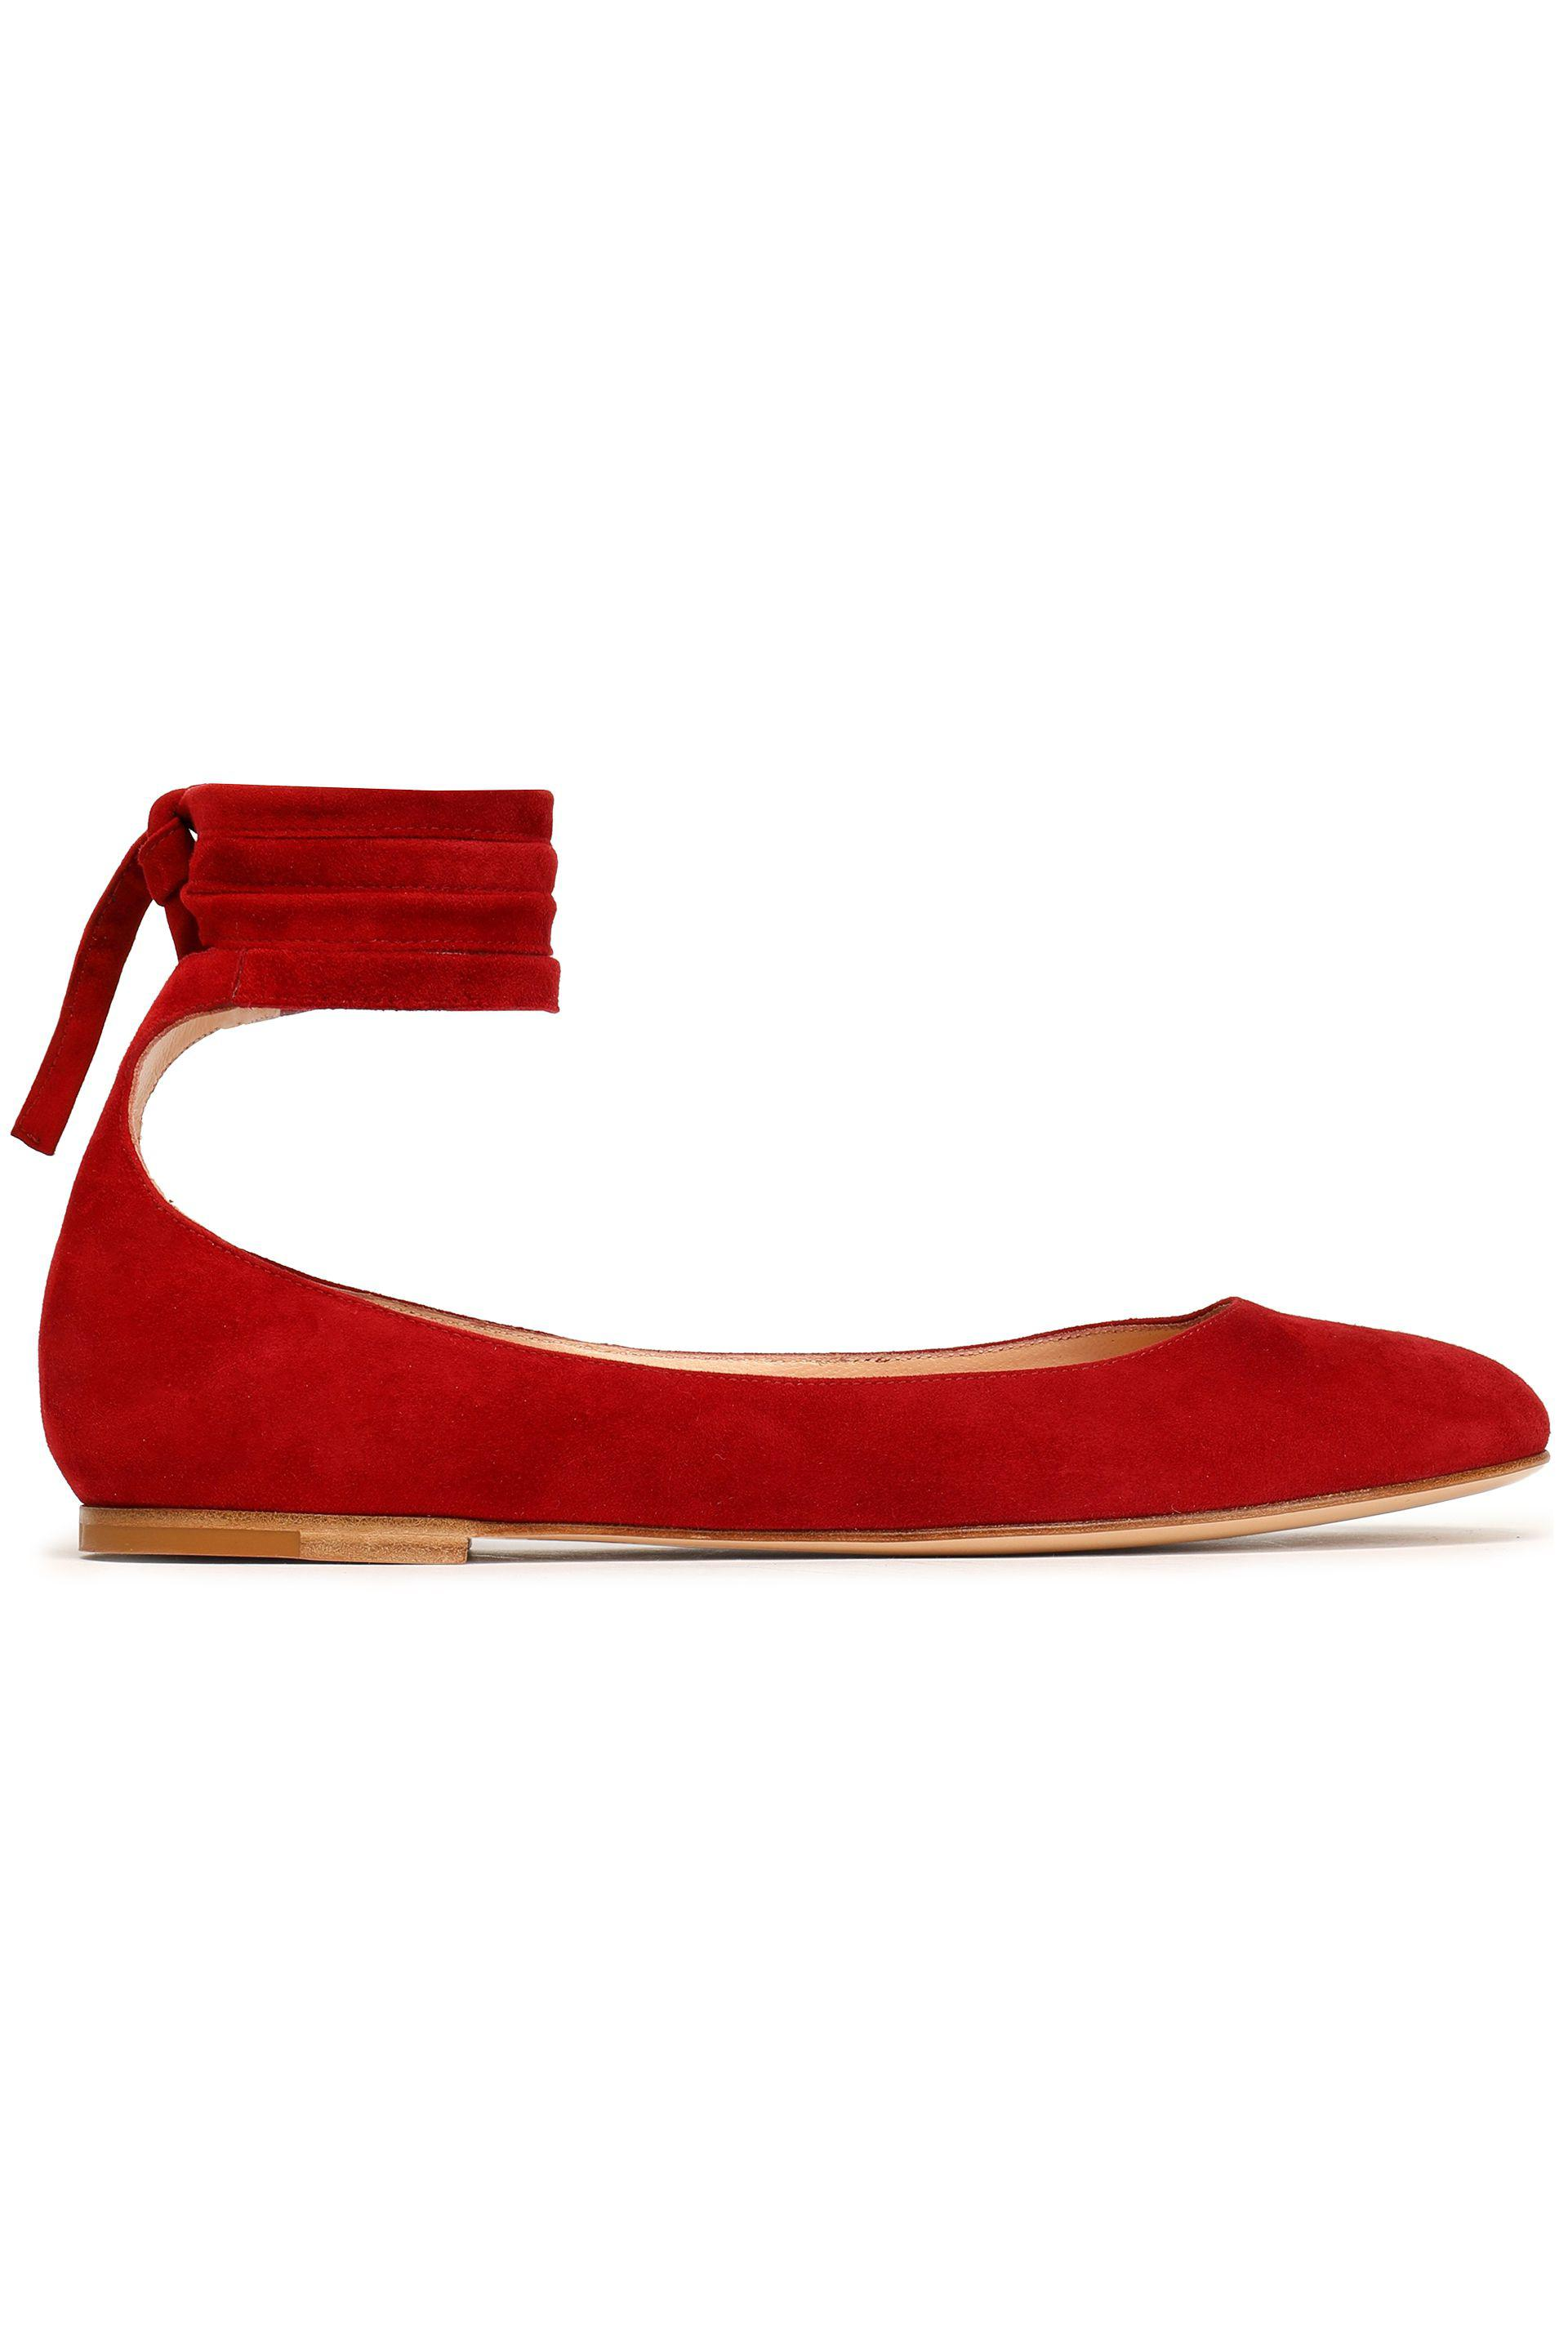 cf5438c61c6d Gianvito Rossi Carla Lace-up Suede Ballet Flats in Red - Lyst